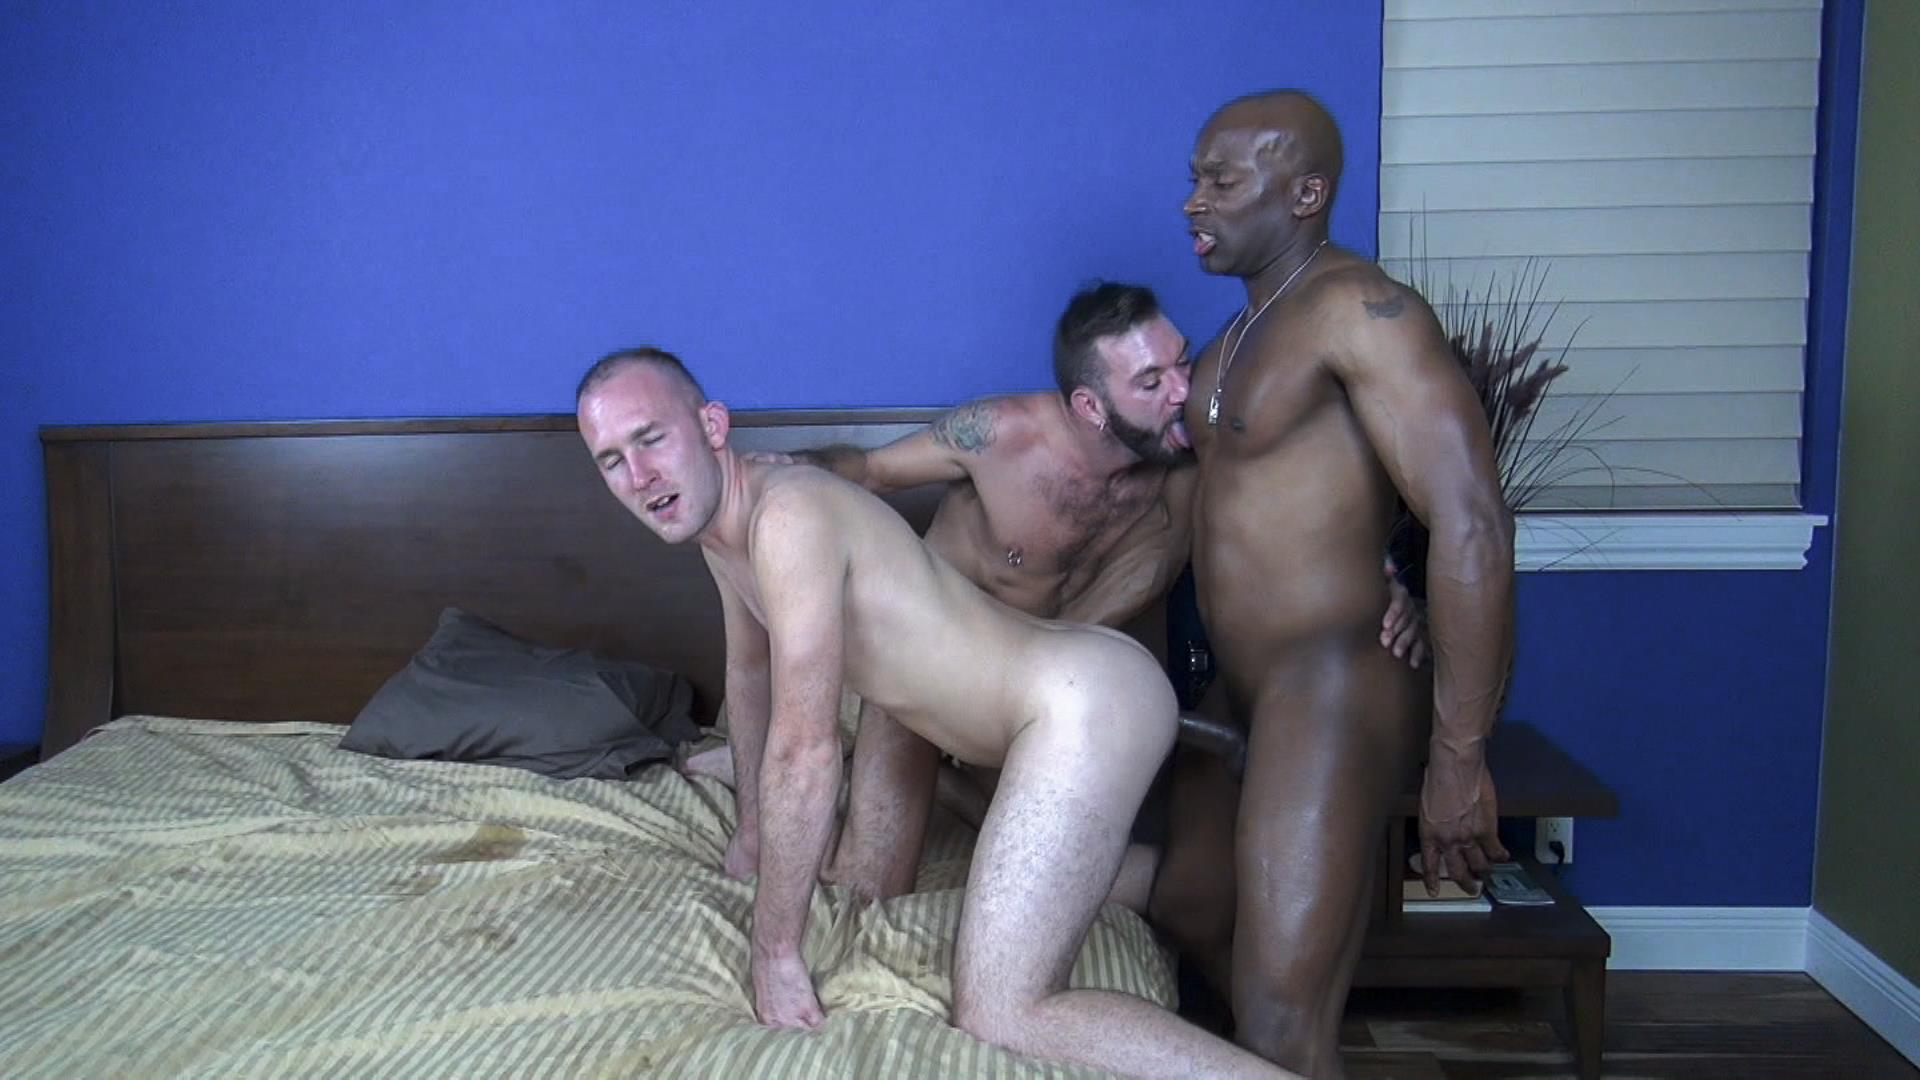 Raw Fuck Club Ethan Palmer and Champ Robinson and Trit Tyler Bareback Interrical Amateur Gay Porn 02 Champ Robinson Shares His Big Black Dick With 2 White Guys